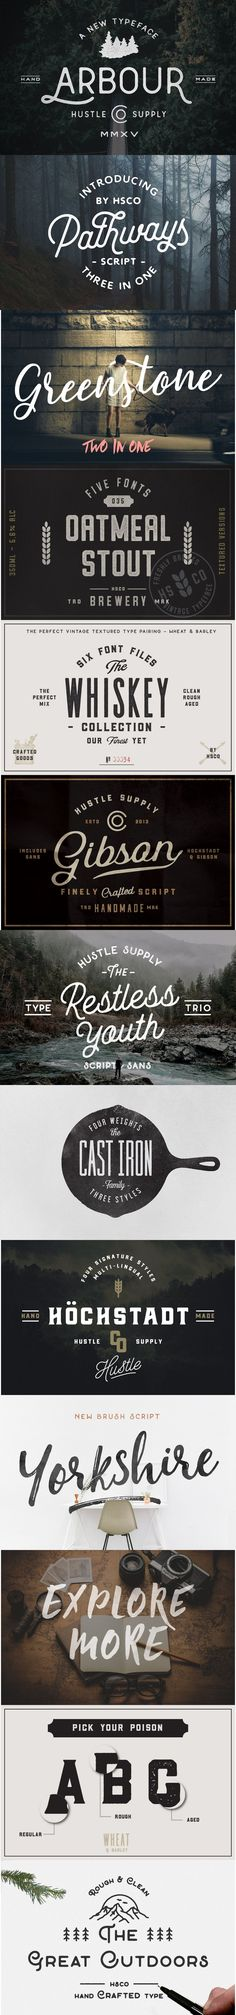 Giant vintage font Bundle | 56 Fonts The Giant Bundle is a collection of 50+ fonts consisting of 12 high selling products by Jeremy Vessey. Including best selling products The Whiskey Font Collection, Yorkshire, The Restless Youth Trio, Oatmeal Stout, Gibson Script, The Cast Iron Family, Hustle Script, Pathways, Hochstadt, Greenstone + Summer Hearts, The Great Outdoors & Arbour. #typography #script #handwritten #typeface #font #calligraphy #design #brush #download #bundle #web #watercolor